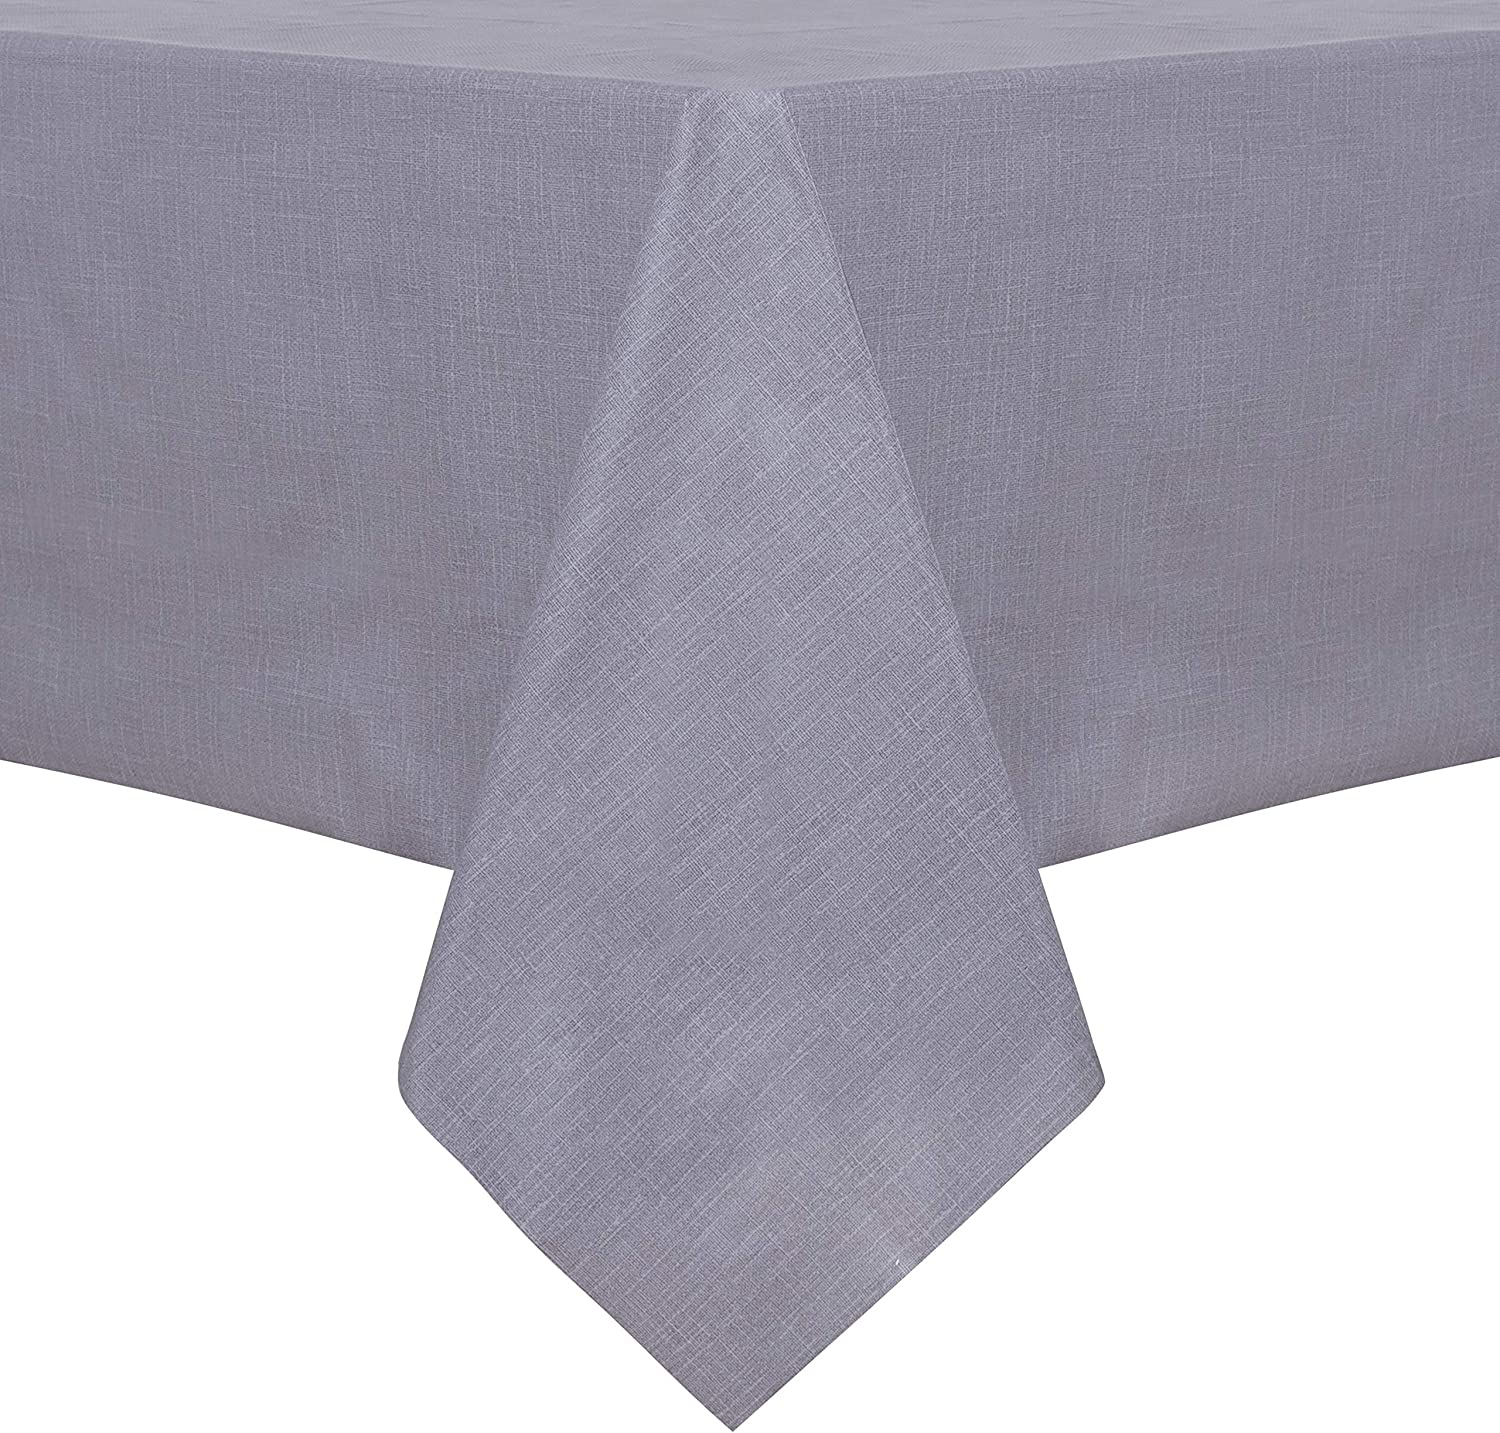 sancua 100% Waterproof Rectangle PVC Tablecloth - 52 x 70 Inch - Oil Proof Spill Proof Vinyl Table Cloth, Wipe Clean Table Cover for Dining Table, Buffet Parties and Camping, Grey